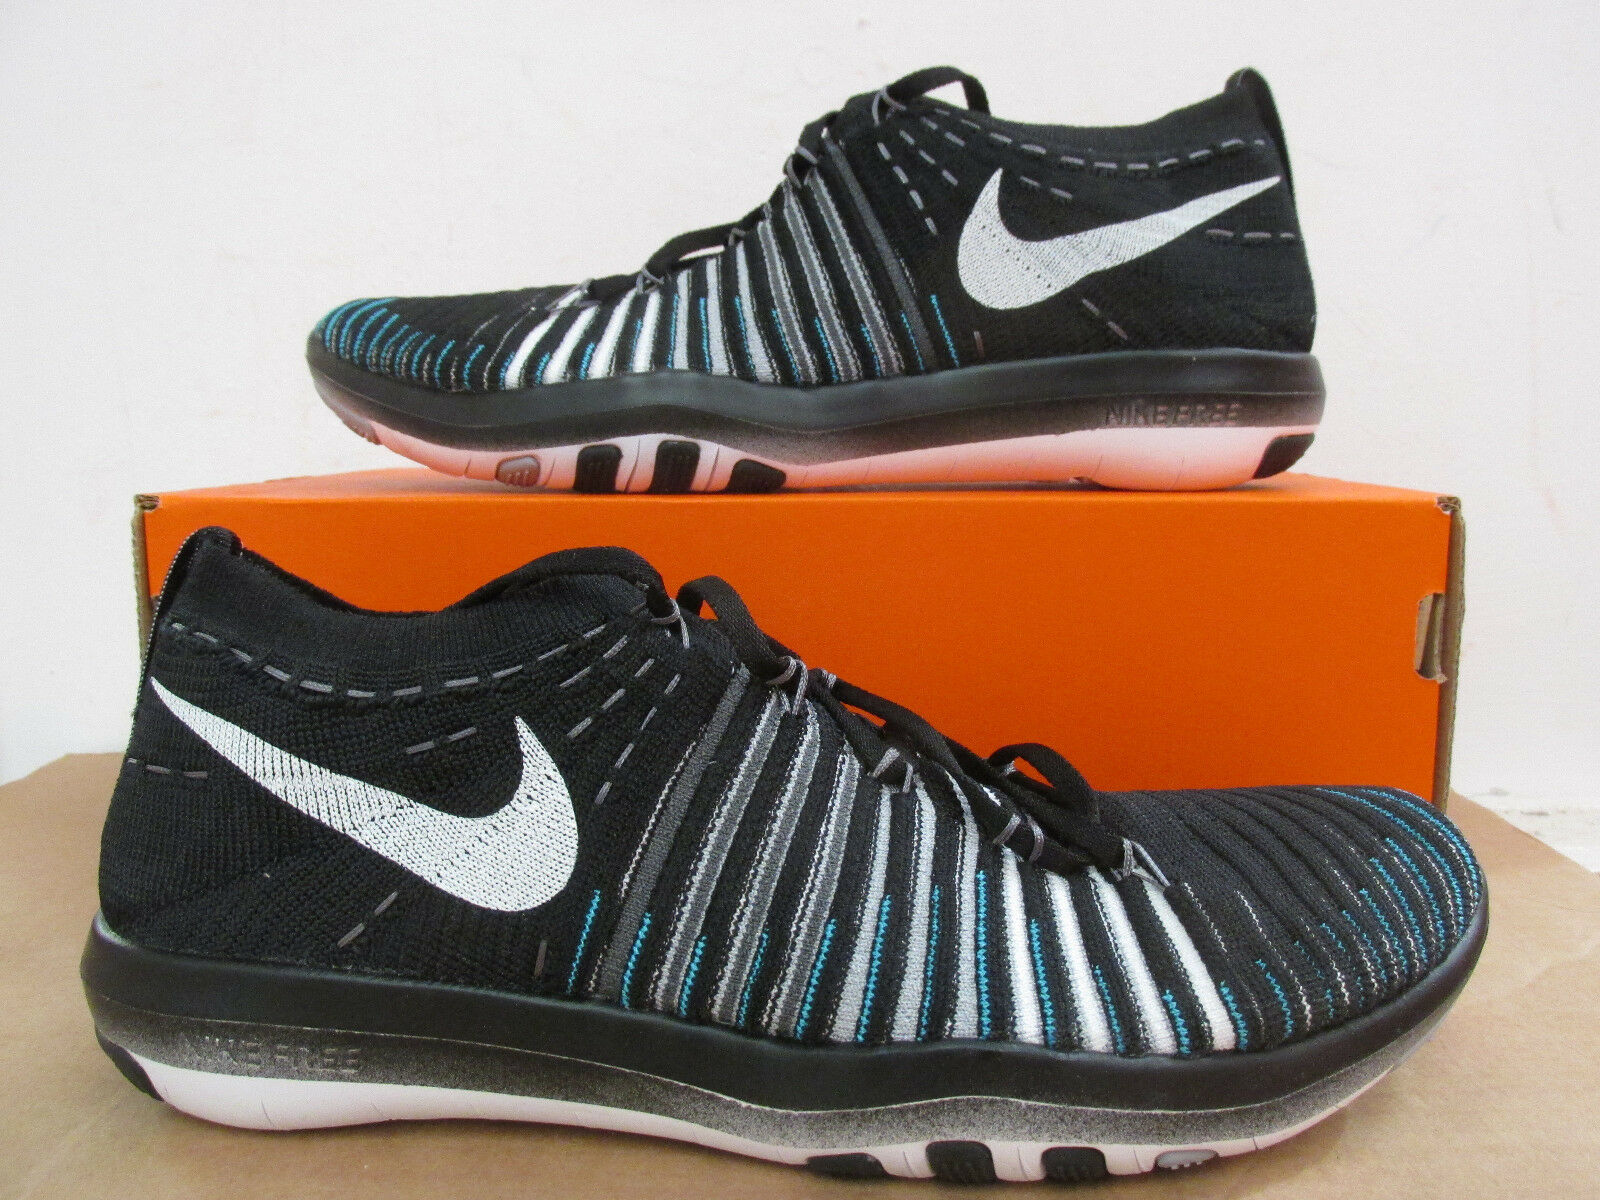 Nike Free Transform Flyknit Femme fonctionnement Trainers 833410 001 chaussures CLEARANCE